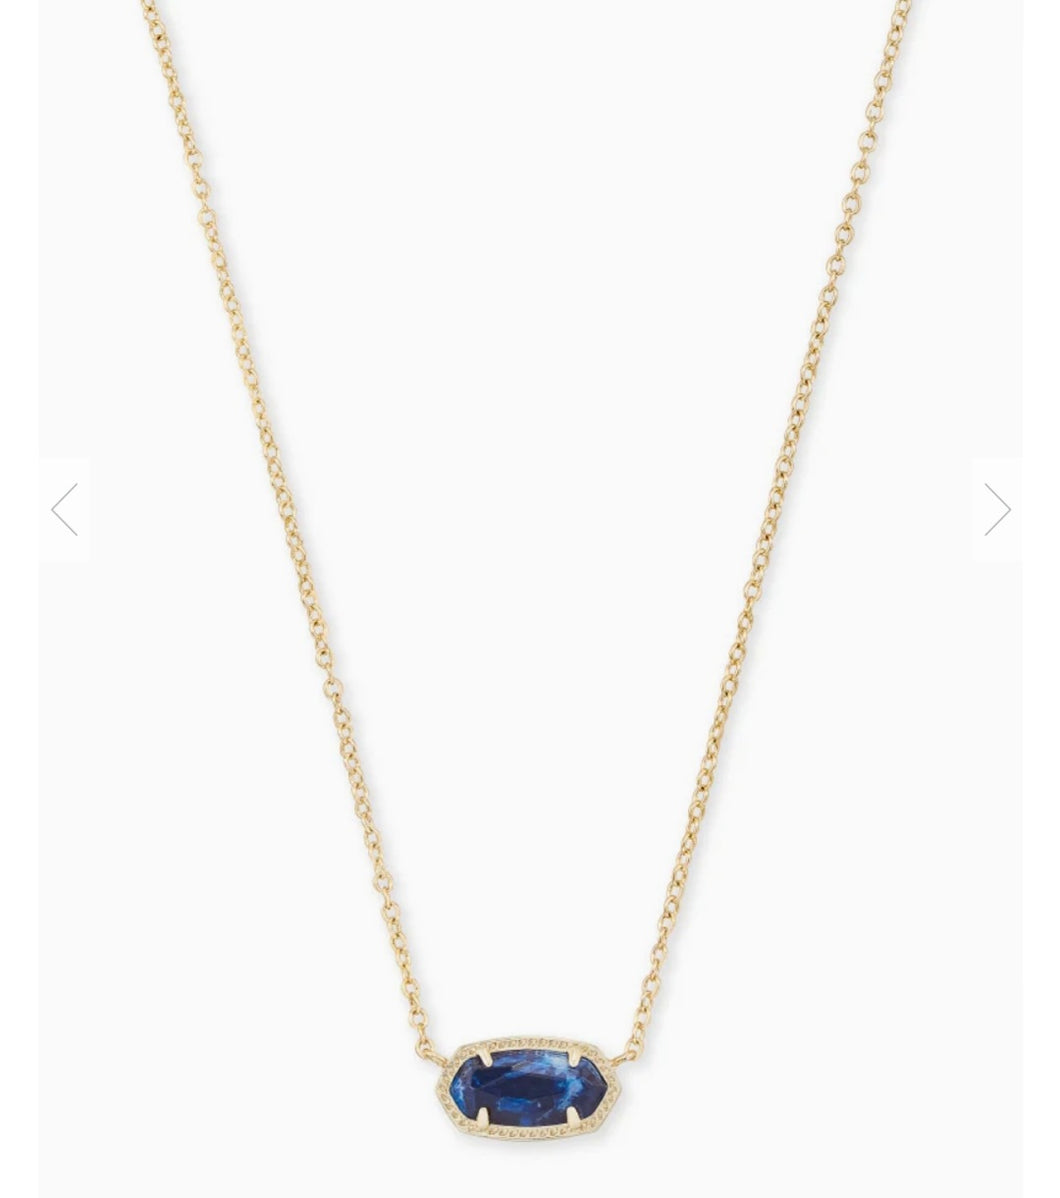 Kendra Scott Elisa Gold Pendant Necklace in Cobalt Howlite